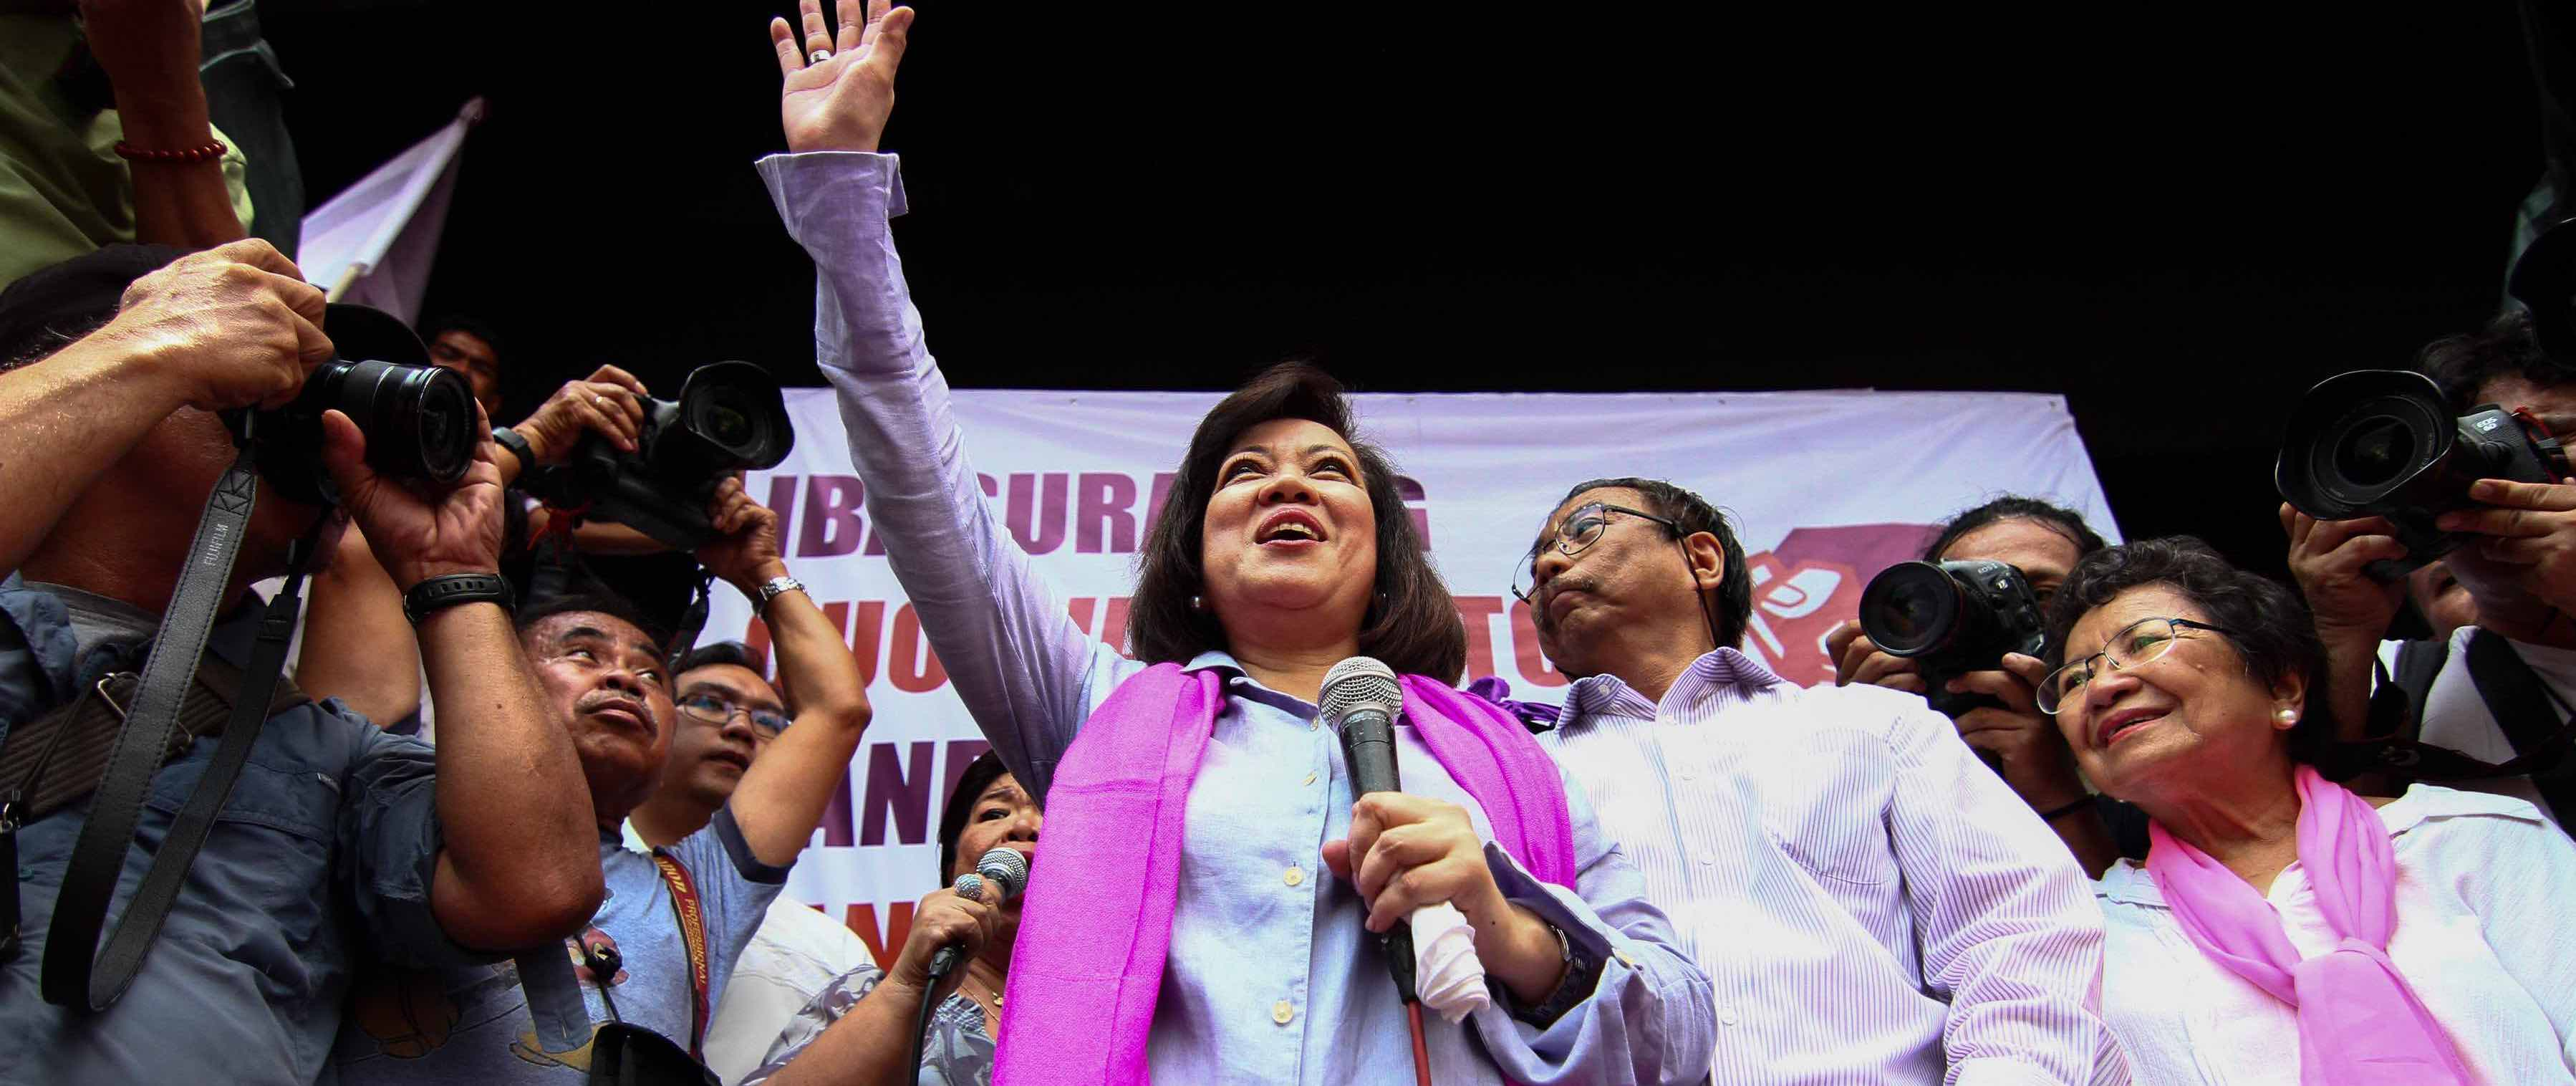 Ousted former chief justice Maria Lourdes Sereno with supporters in Manila (Photo: J Gerard Seguia/Getty)